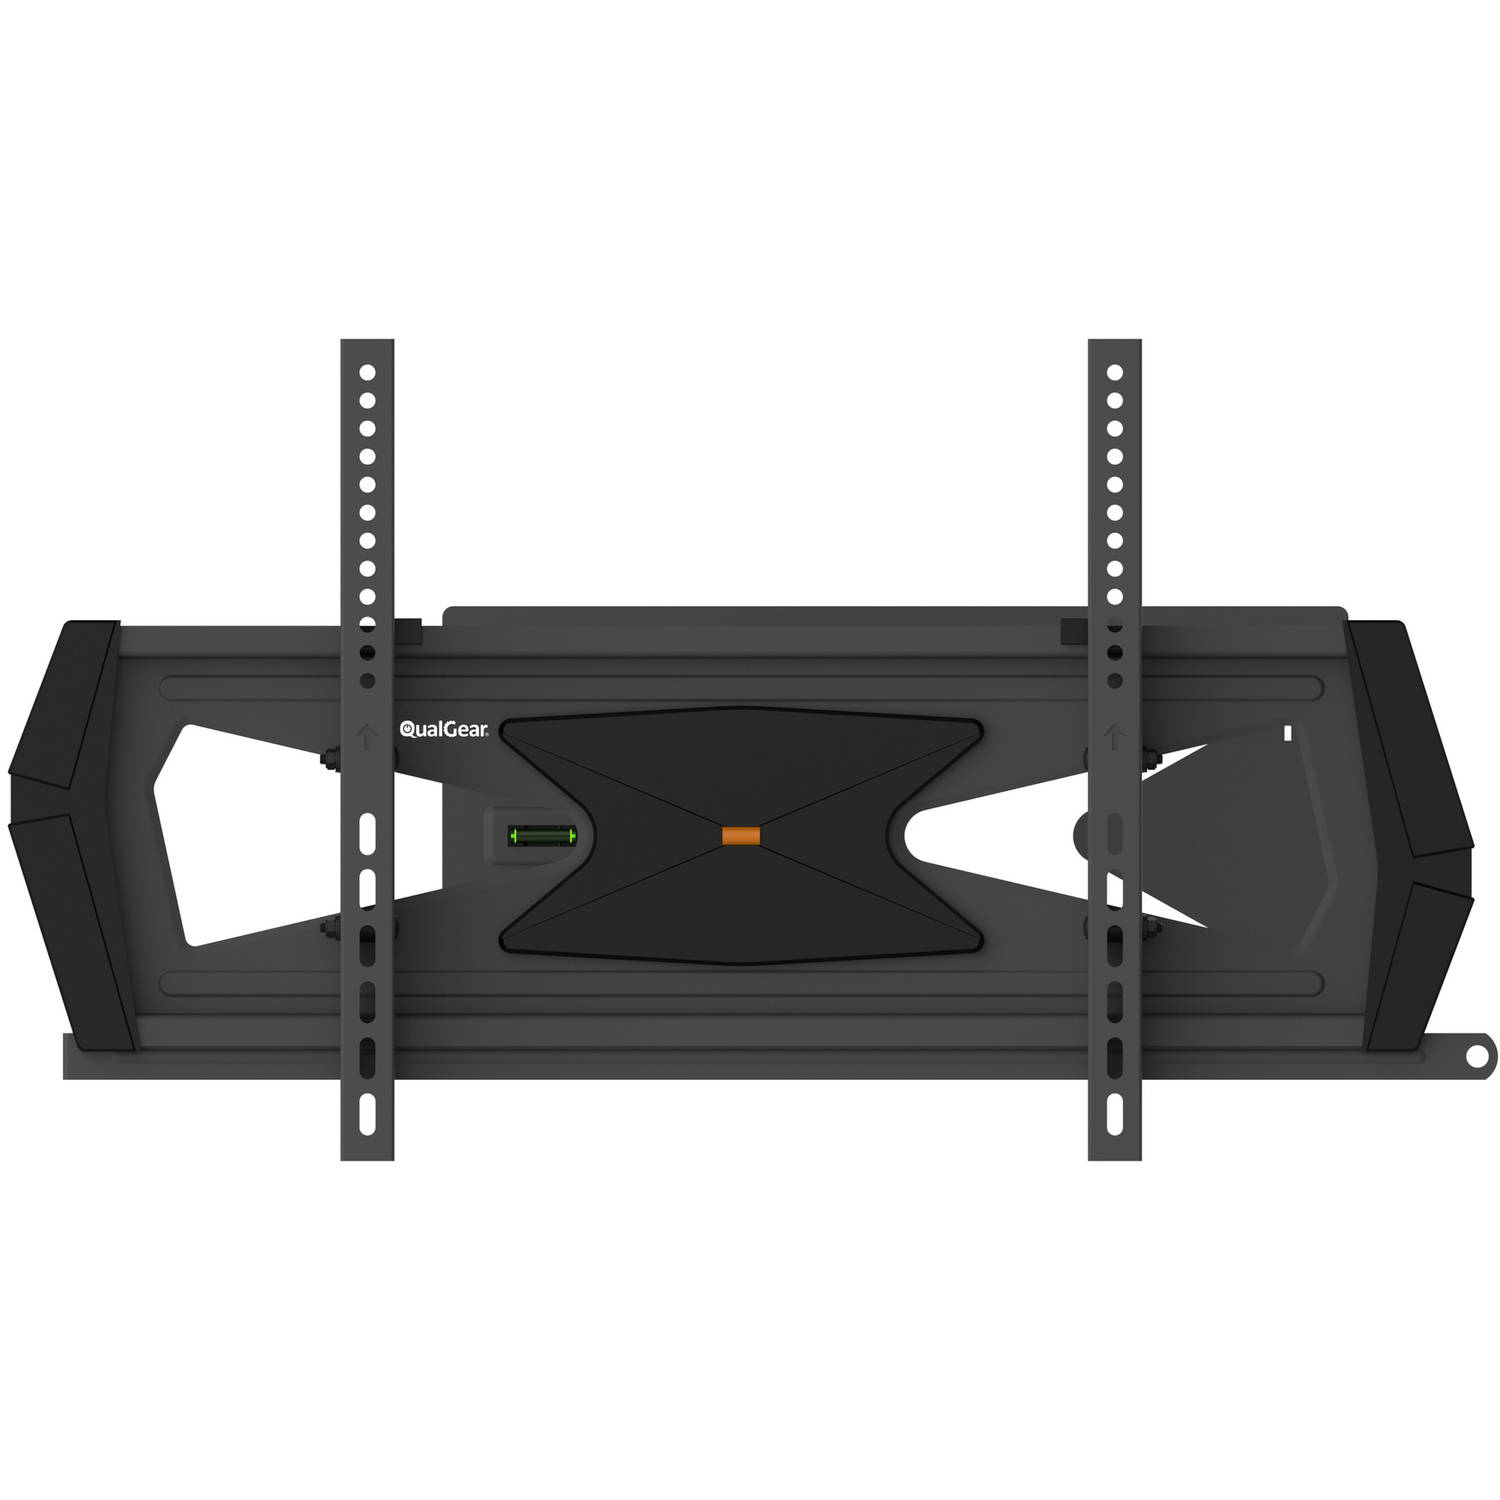 "QualGear Heavy-Duty Full Motion TV Wall Mount For Most 37""-70"" Flat Panel and Curved TVs, Black"